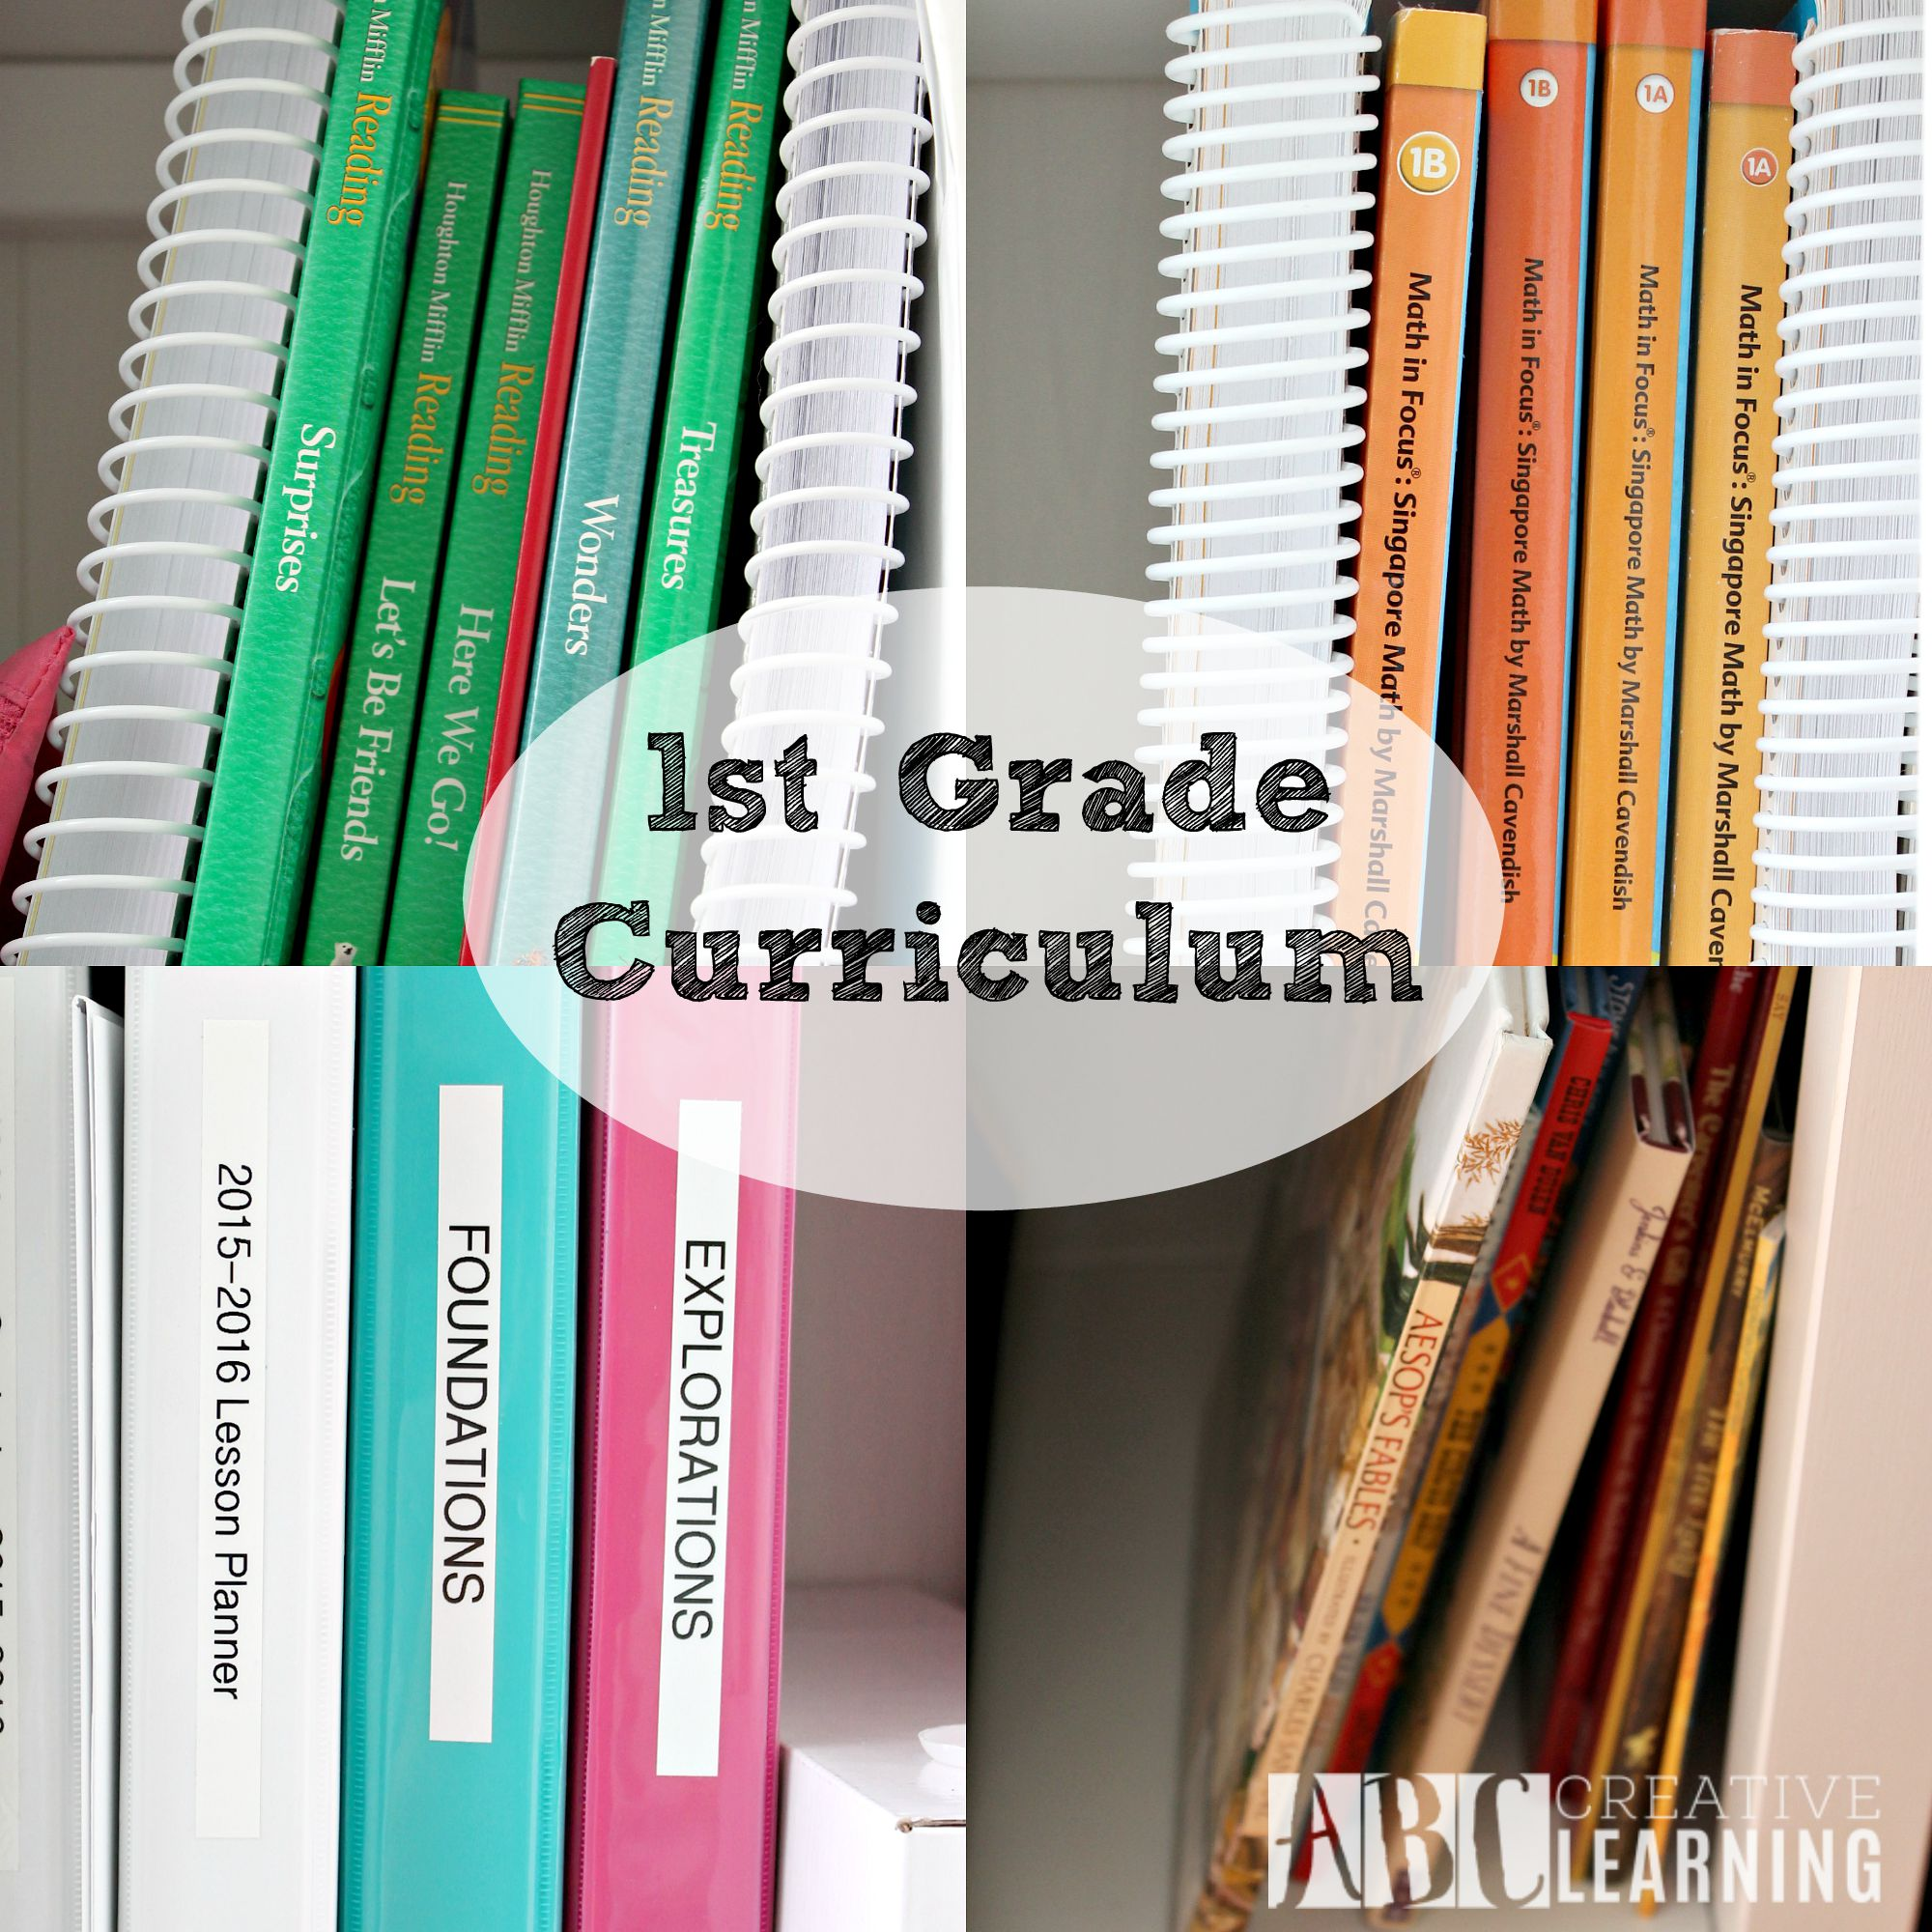 Our Curriculum 2015-2016 1st Grade